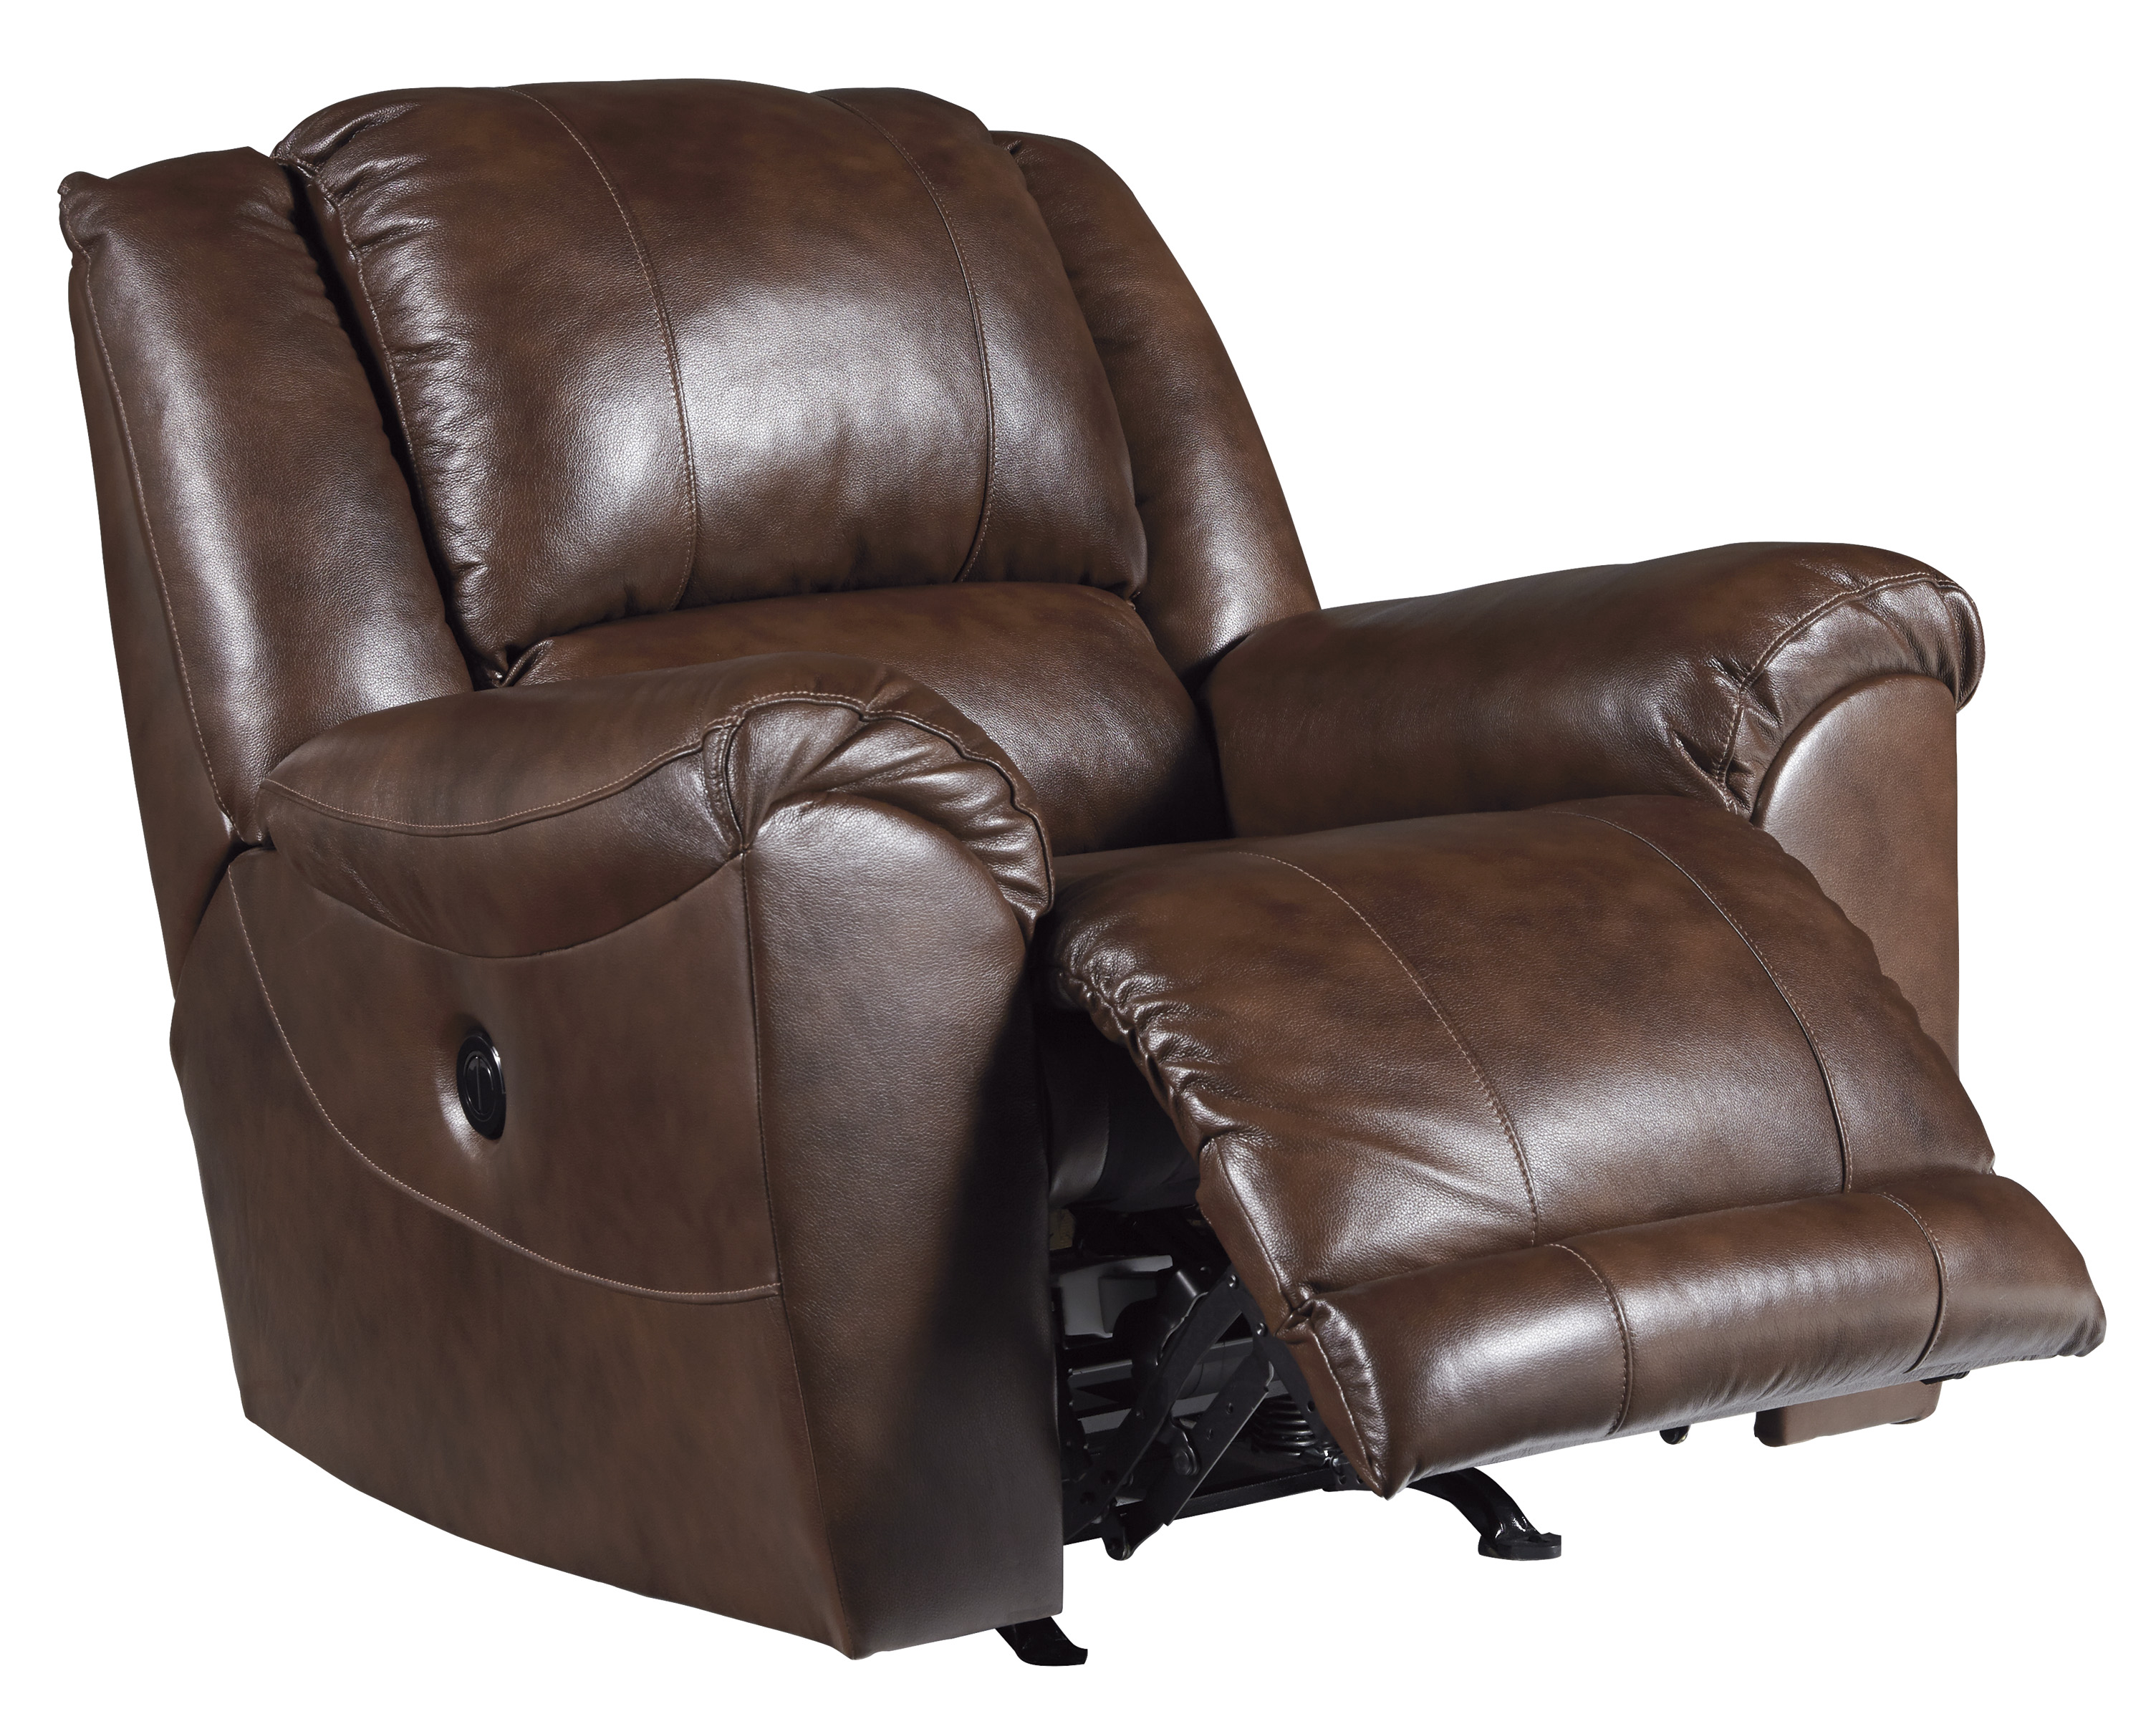 Persiphone Canyon Power Rocker Recliner,Signature Design by Ashley